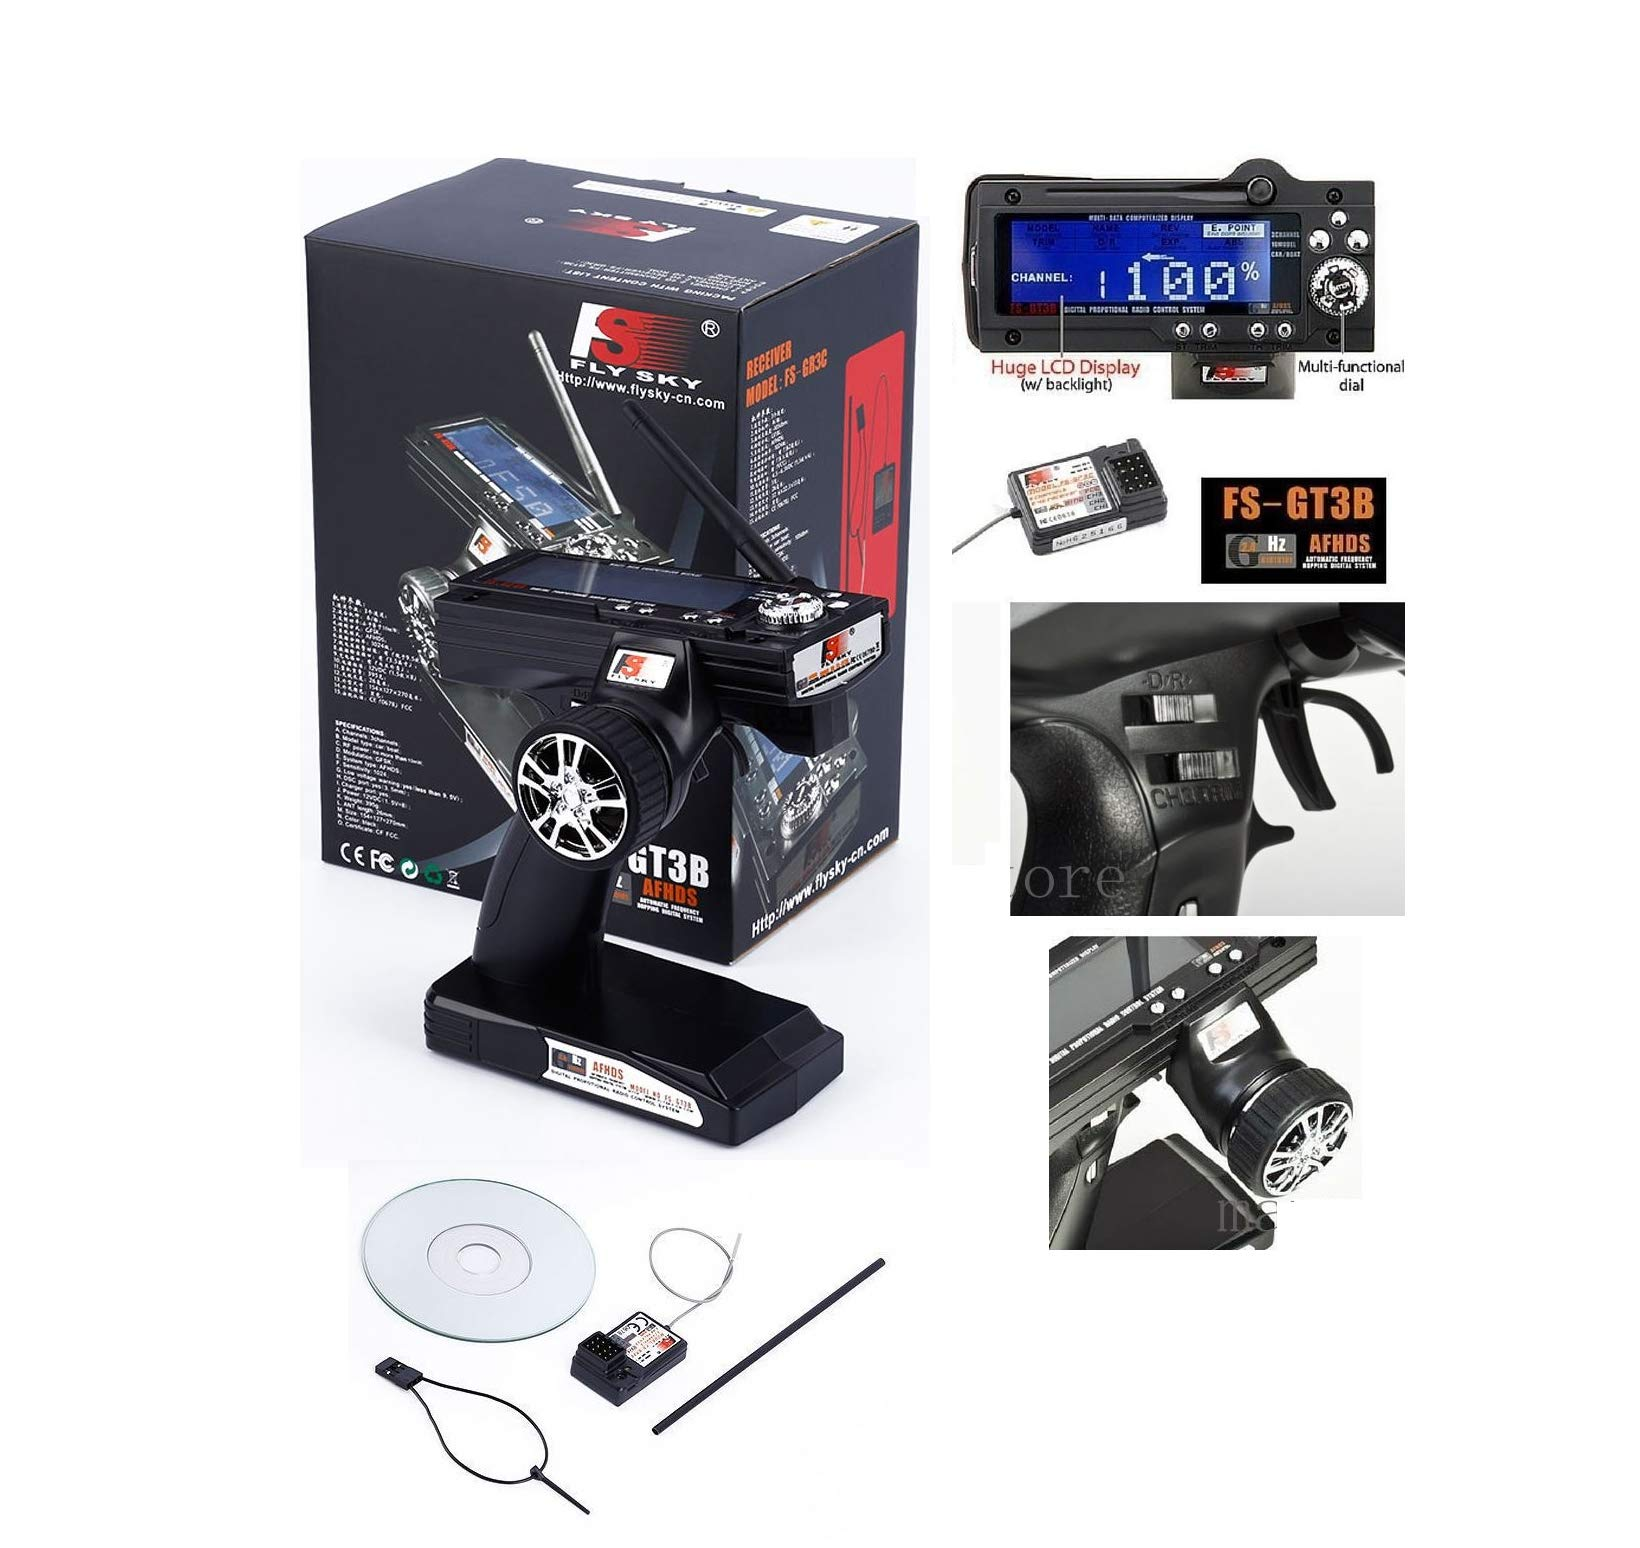 Genuine FS-GT3B 2.4G 3CH Radio Remote LCD Transmitter & Receiver for RC Car Boat Quick Arrive